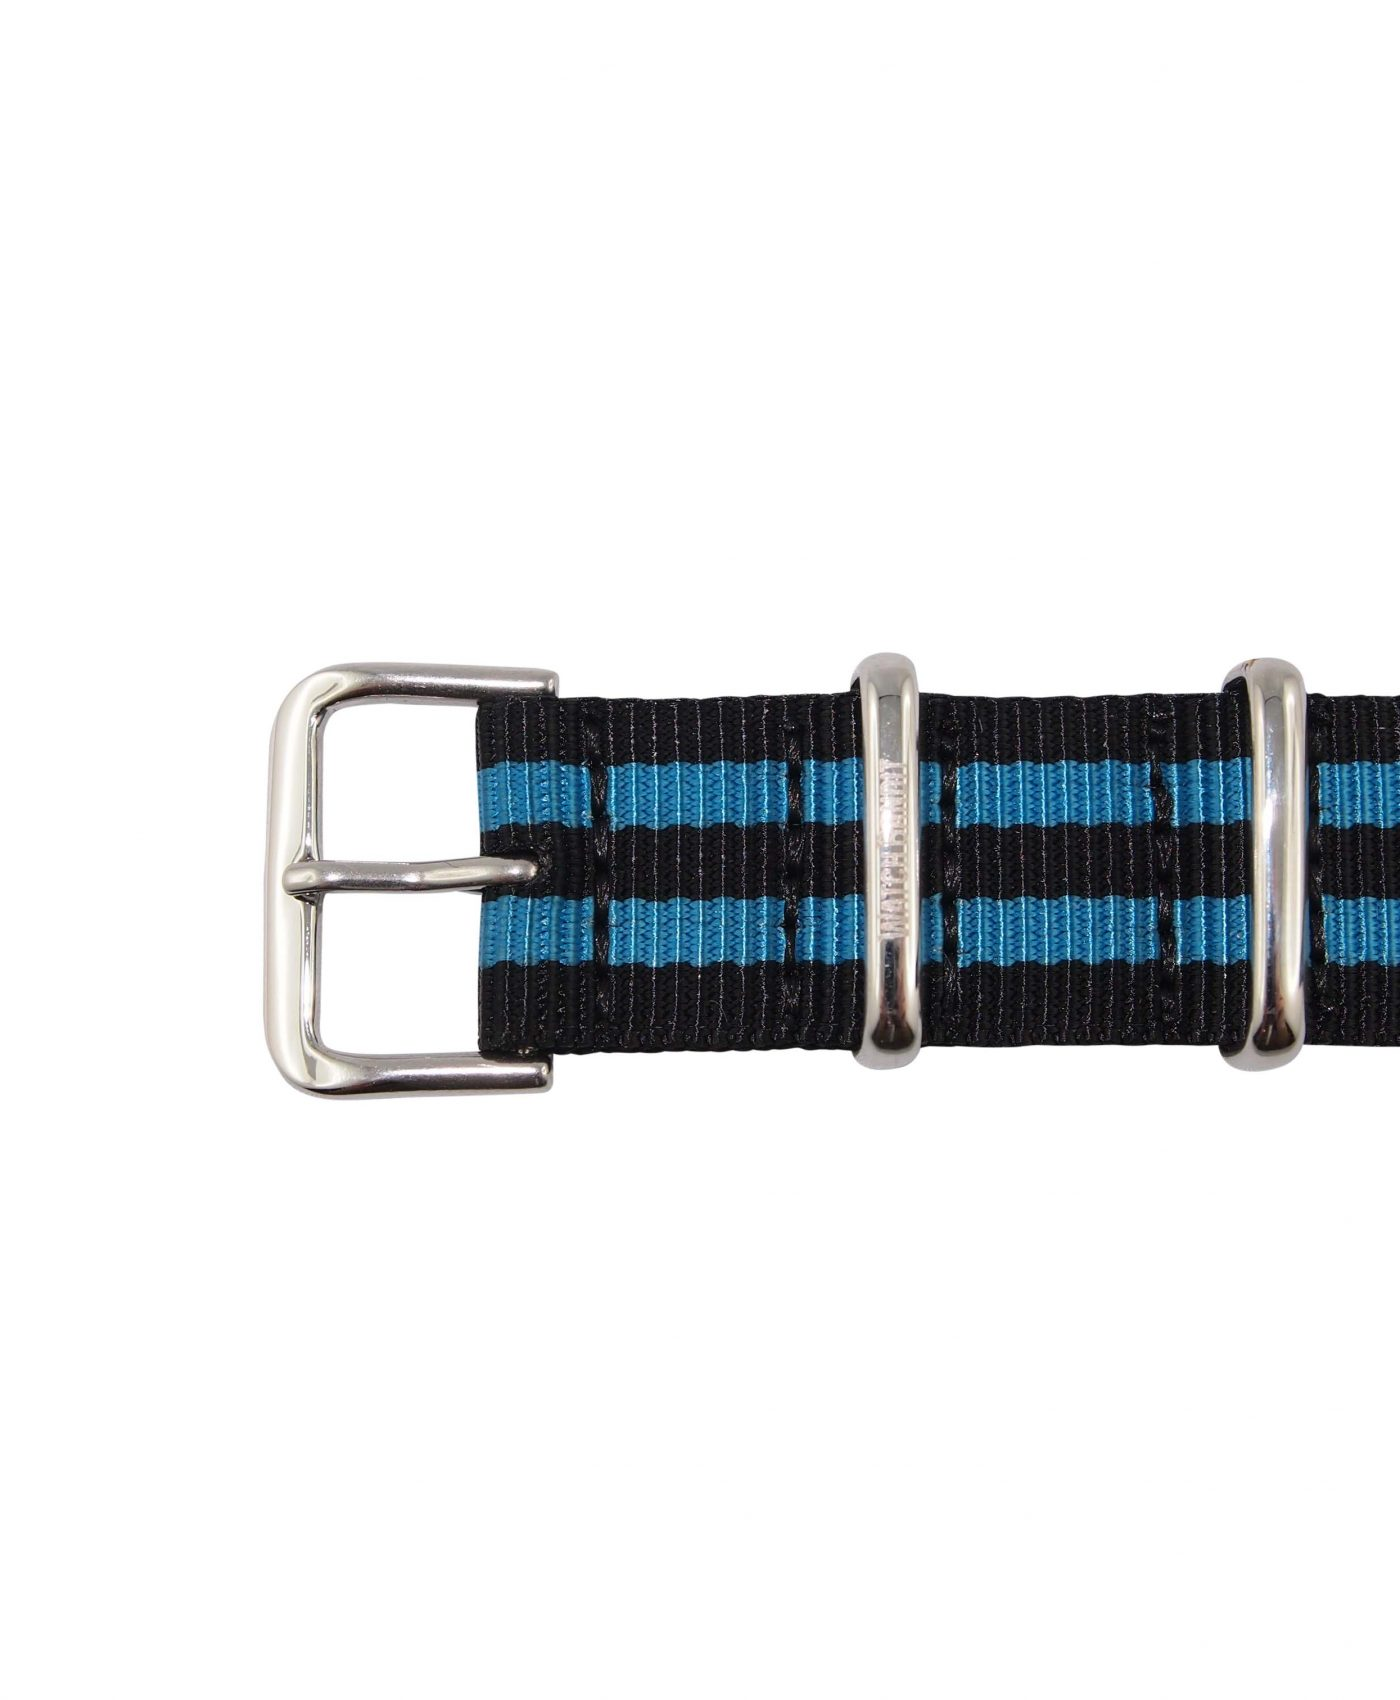 Nato Strap | Black & Light Blue | Polished | 18 mm